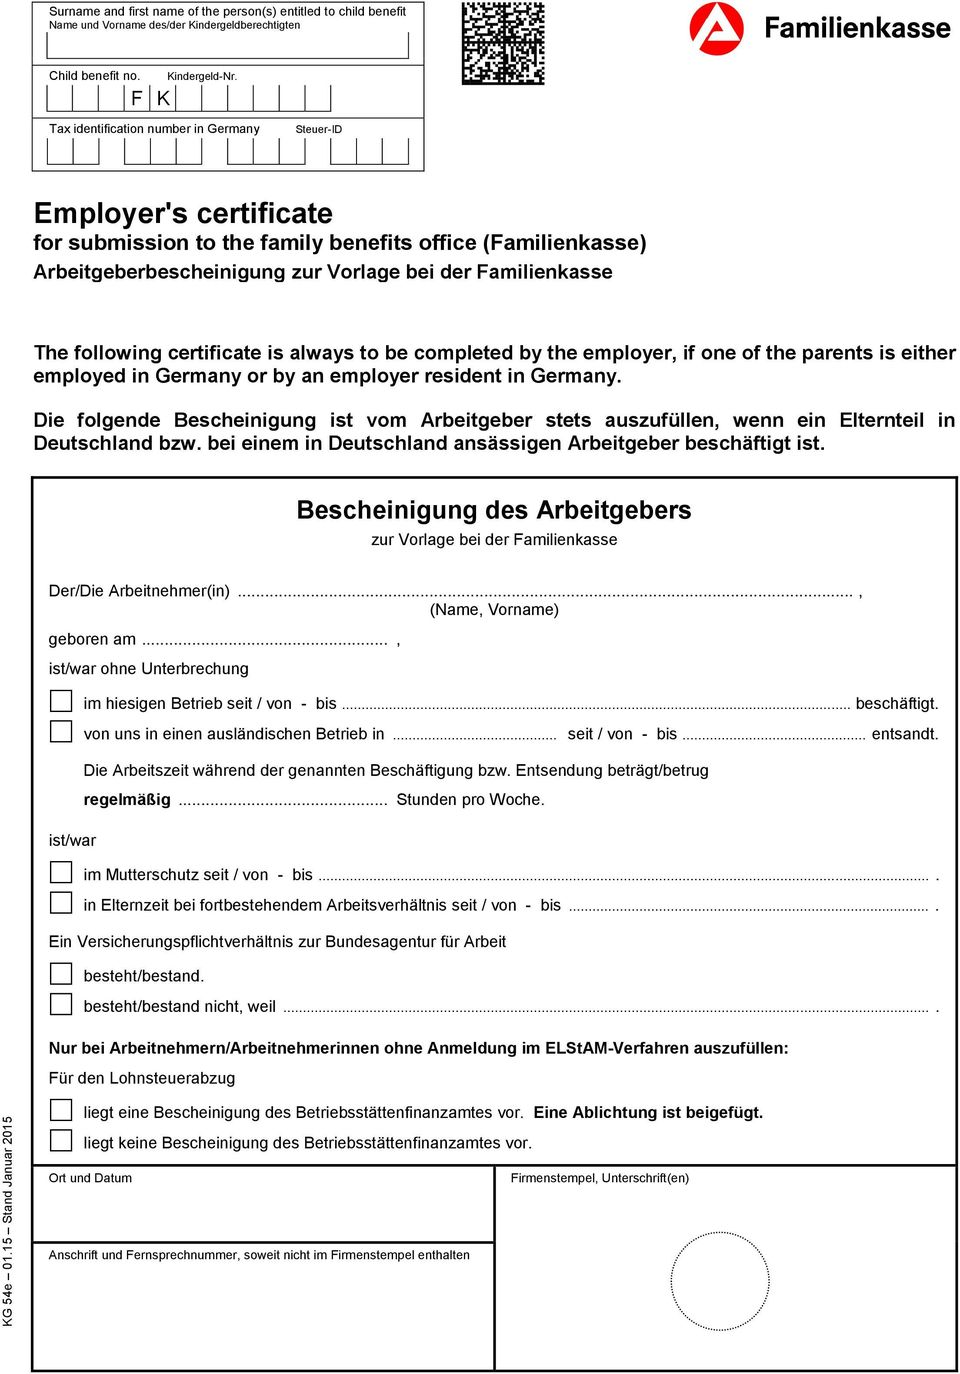 following certificate is always to be completed by the employer, if one of the parents is either employed in Germany or by an employer resident in Germany.